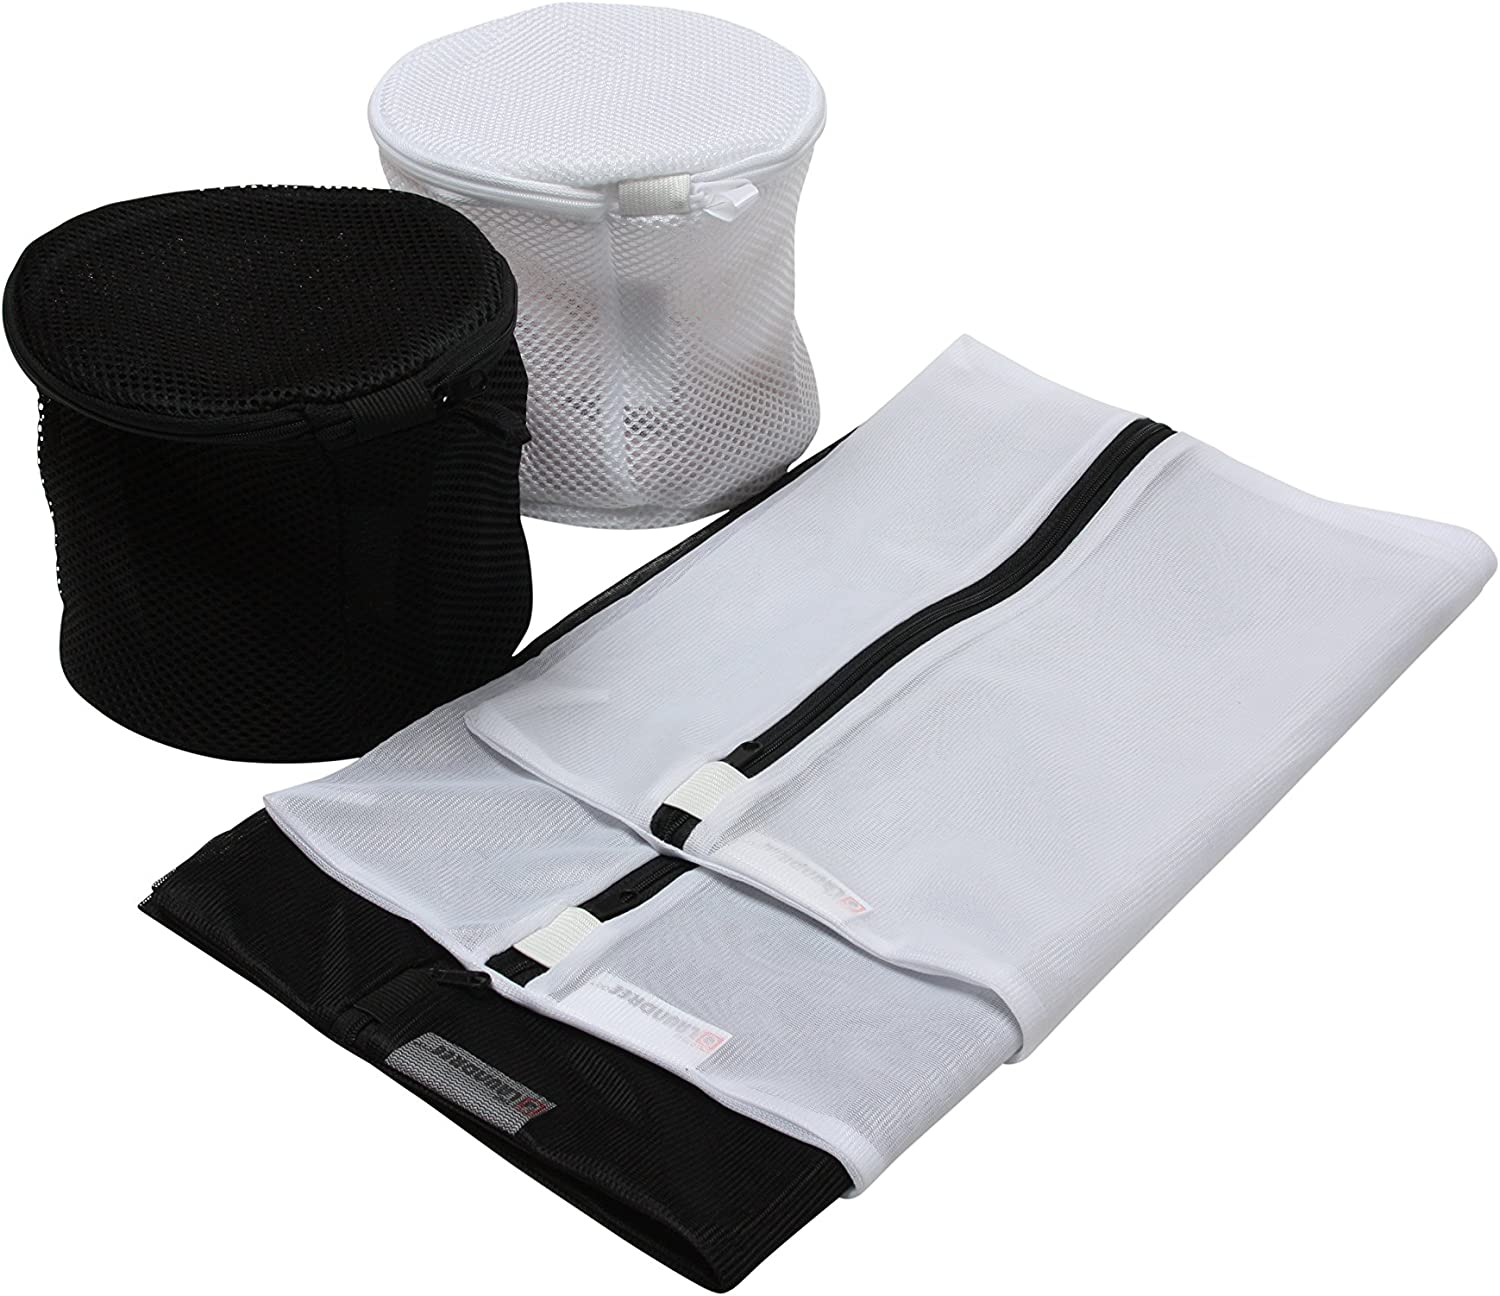 Mesh Laundry Bags - Set of 5 (2 Large, 1 Medium & 2 Premium Round Double Layer Wash Bags - White & Black) for Delicates, Reusable Face Masks, Socks, Baby Items and Laundry Travel Organization